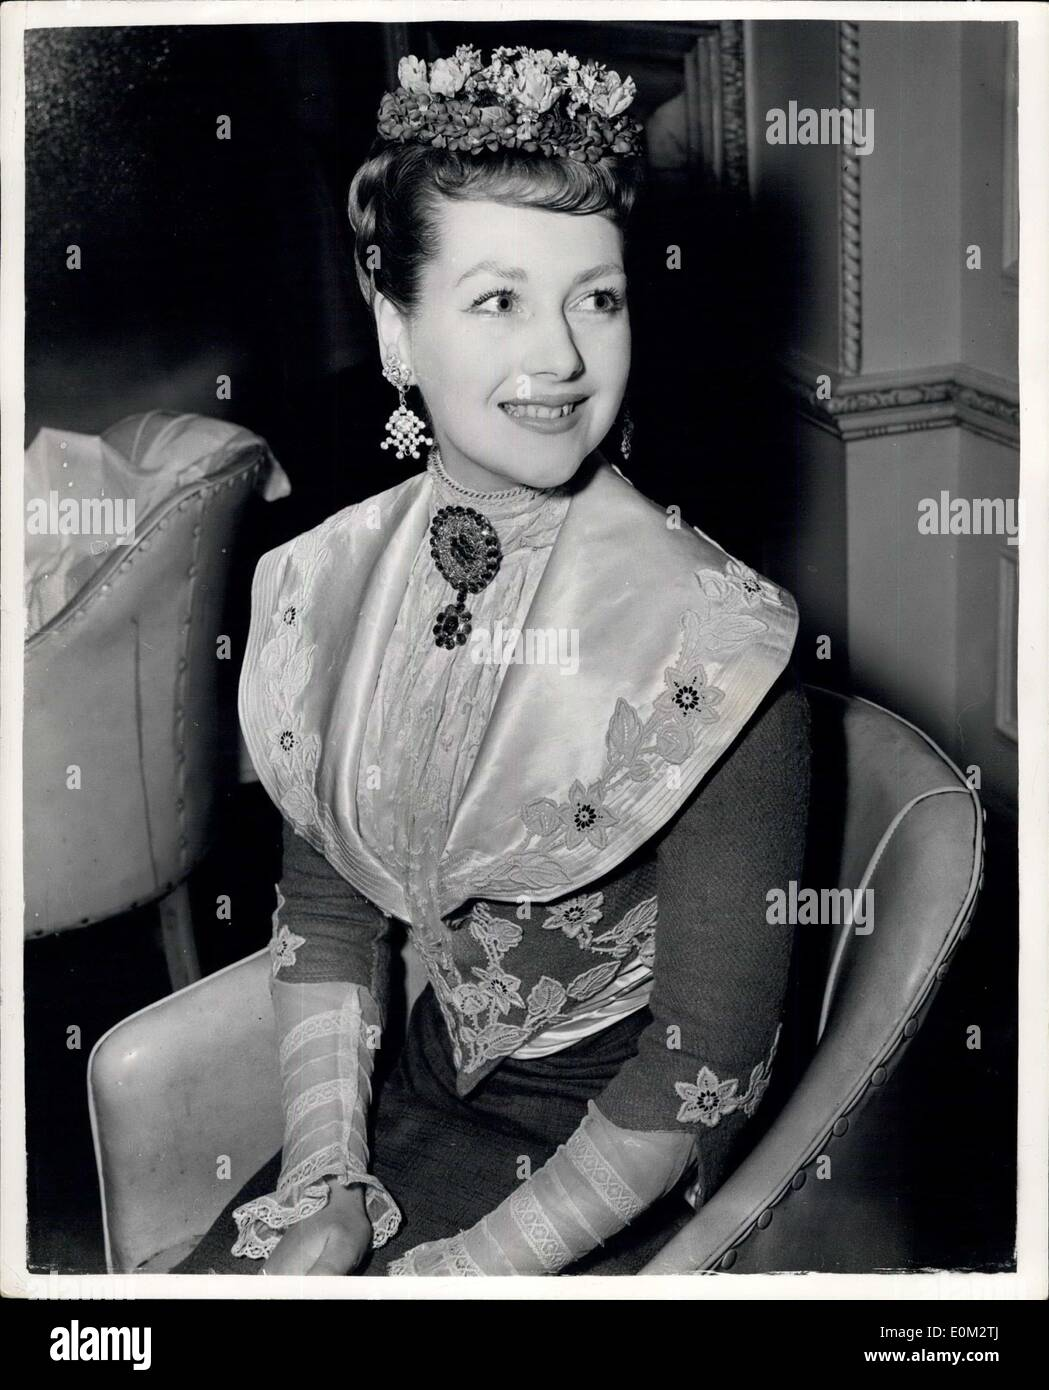 May 14, 1953 - The Hon. Mrs. Gerald Legge has a special hair-do 19th. Germany for Charity Show: The Hon. Mrs. Gerald Legge who is playing the part of a coquette in a special production of ''Lord and Lady Algy'' - paid a visit to the West End Hair Stylist Steiner to receive a special 19th. century hair-o. The show is to be produced aid the Children's Aid Association. Other members of the cast include Mrs. Ghislaine Alexander; Lord Porchester; Lord Ednam and Billie Wallace. Photo Shows Mrs. Gerald Legge having her hair dressed - 19th. century style - by Steiners. - Stock Image